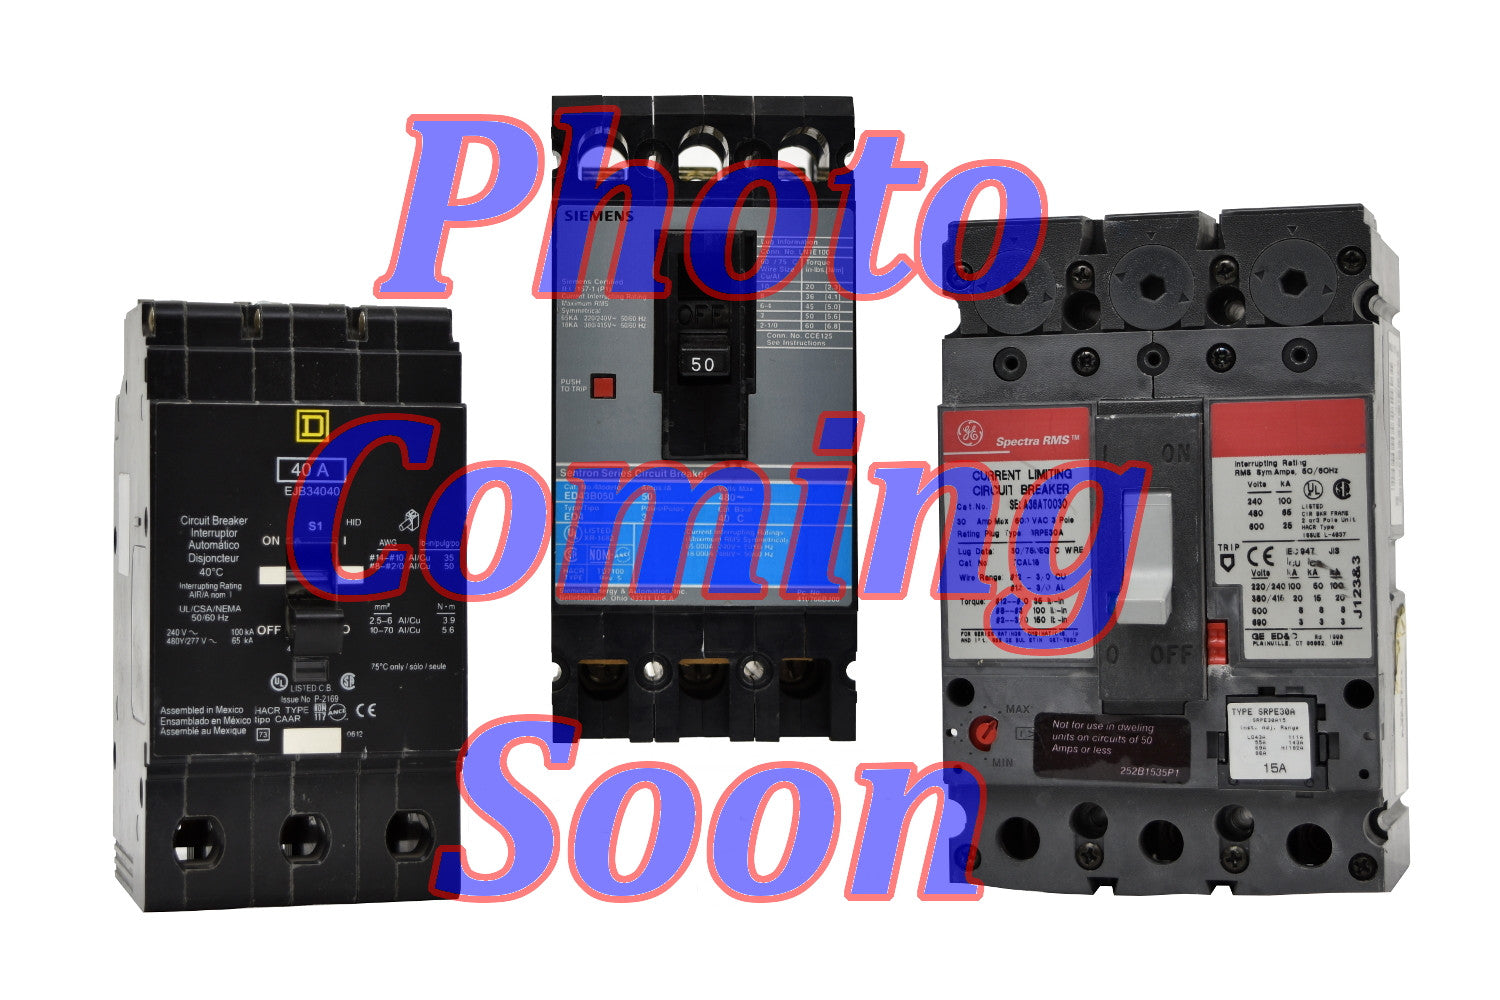 General Electric FCV36TE035R2 Circuit Breakers